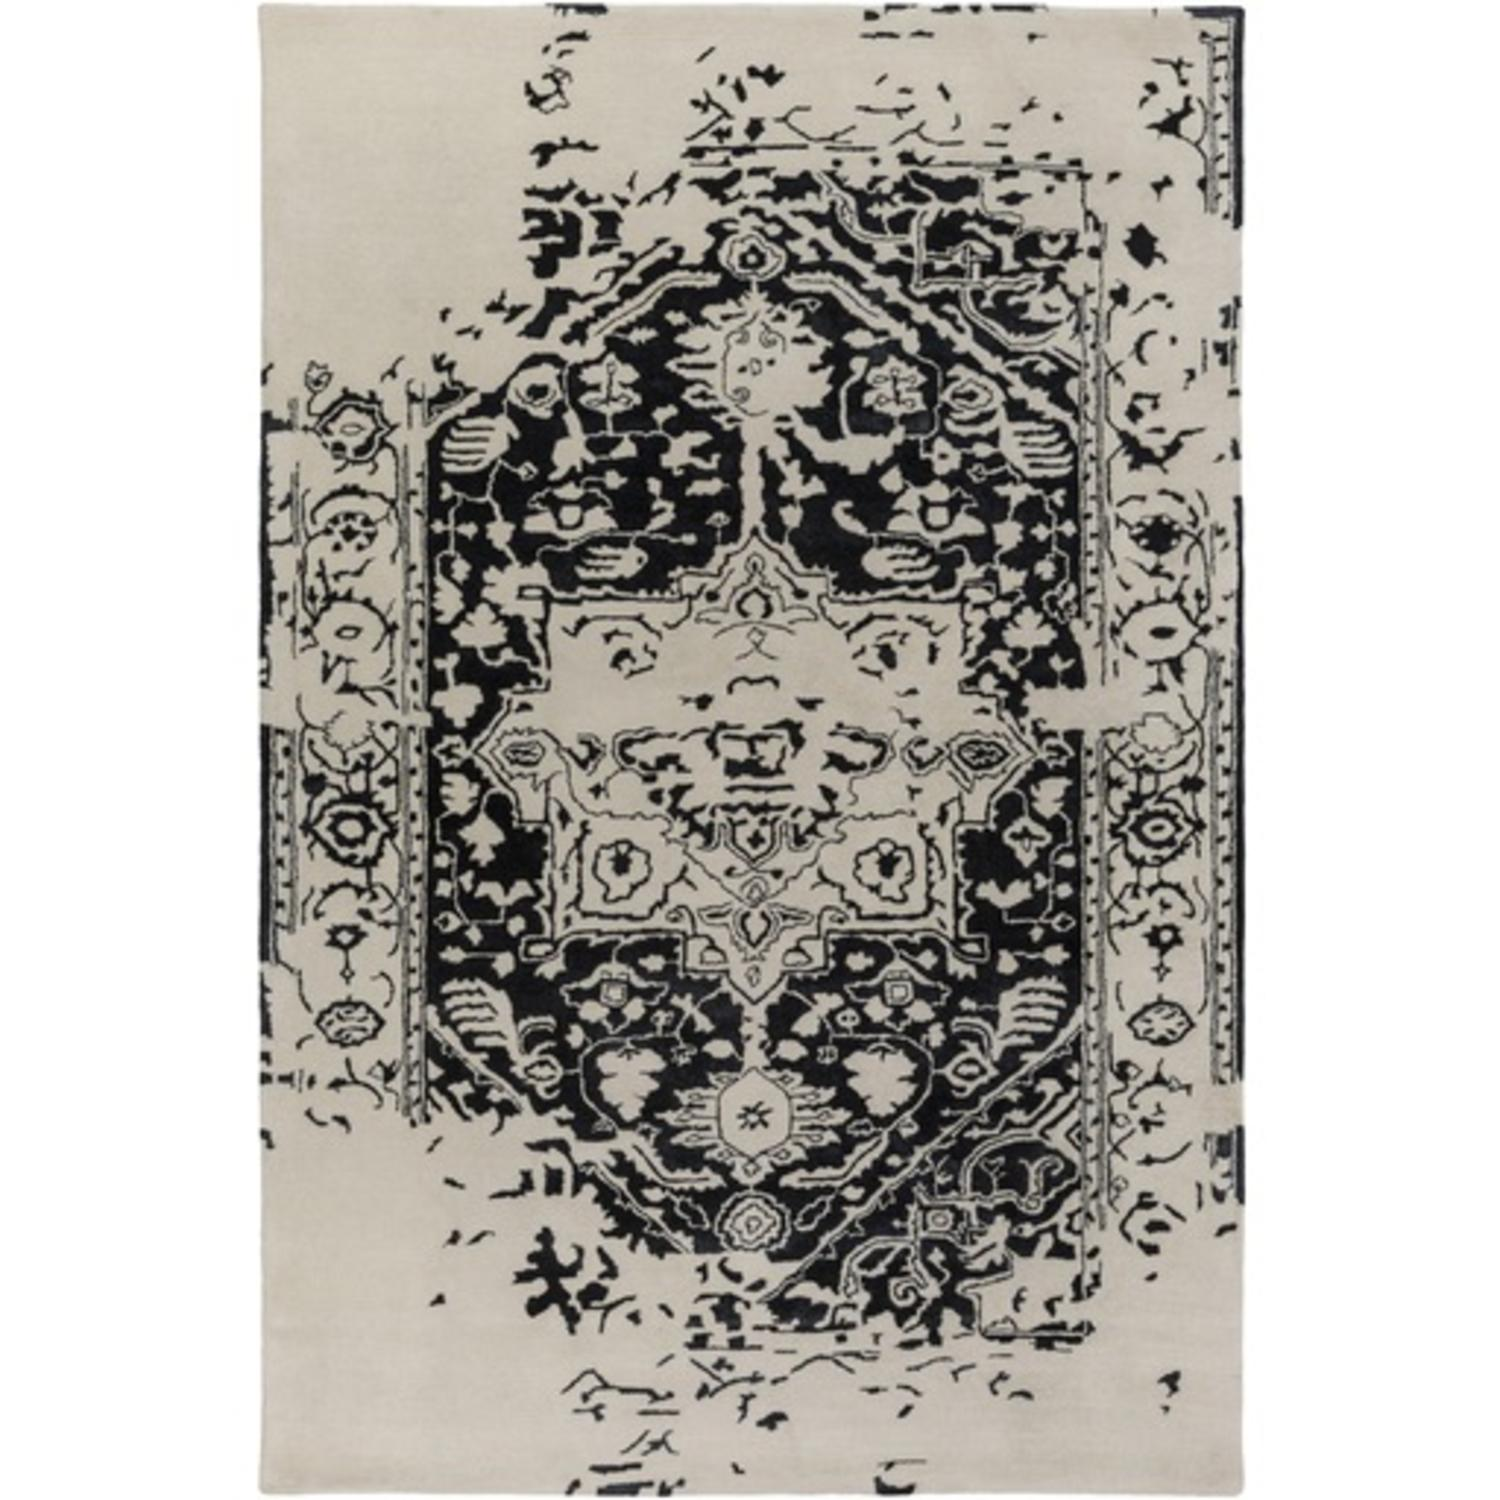 6' x 9' Graceful Elegance Caviar Black and Ivory Hand Tufted Area Throw Rug